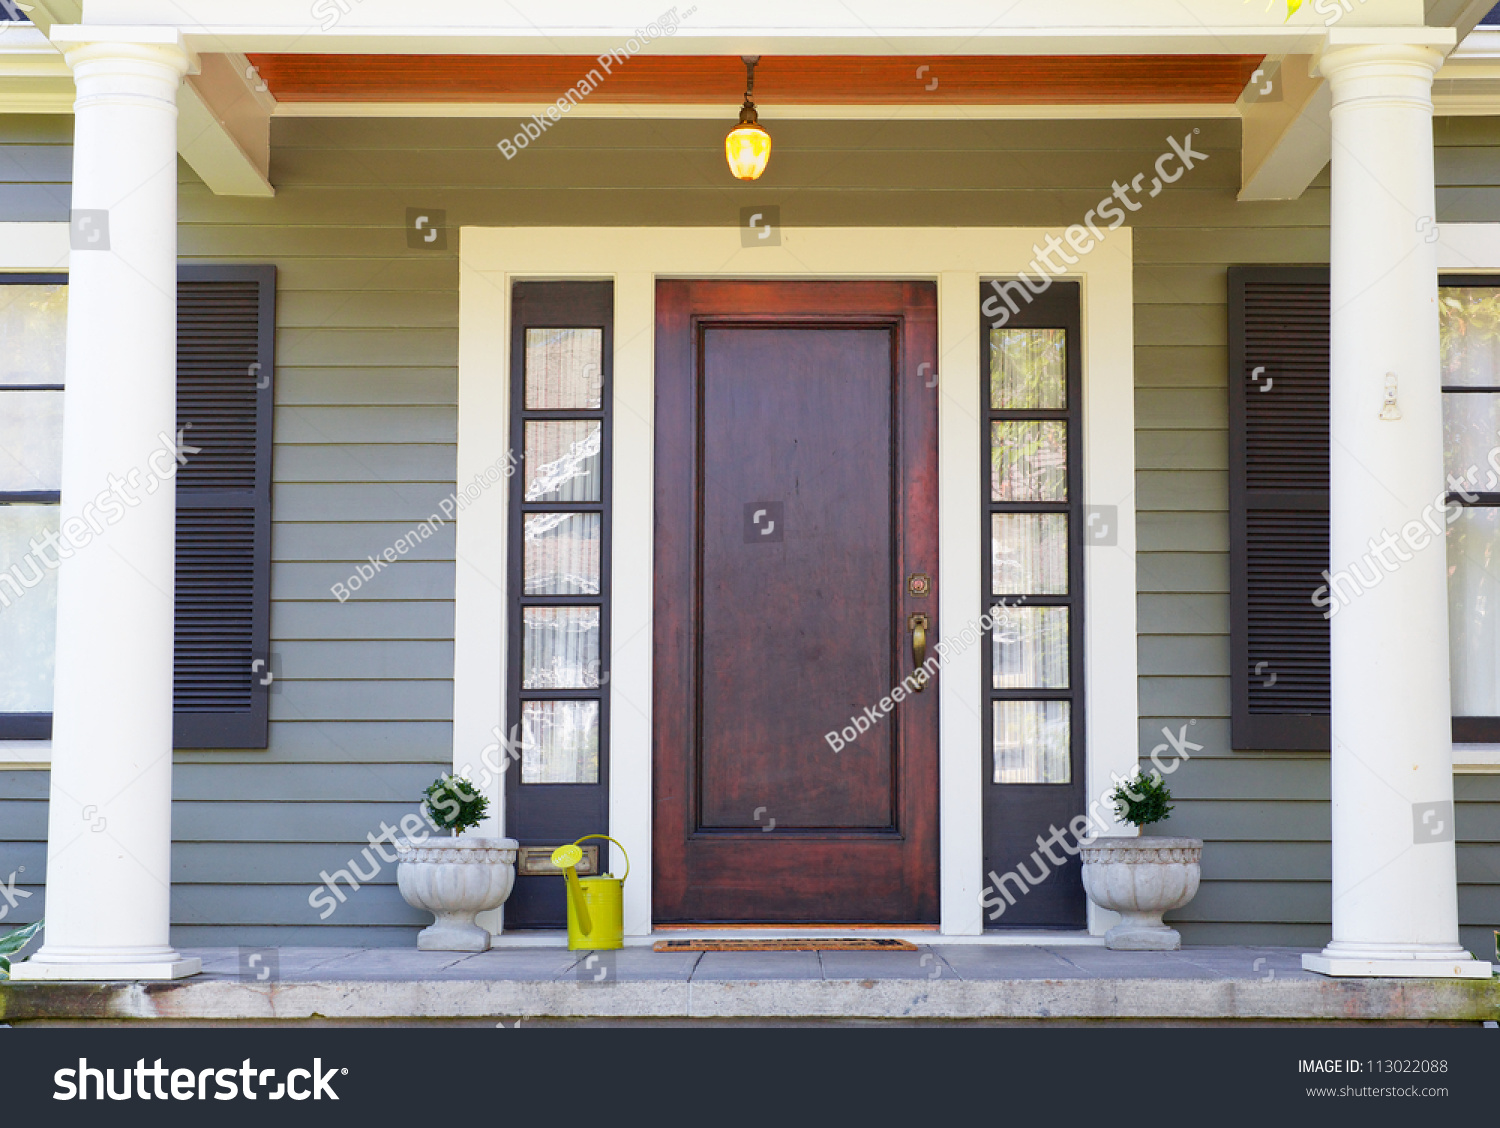 Brown stained front door on home stock photo 113022088 shutterstock brown stained front door on a home with bordering window and a pillared porch rubansaba